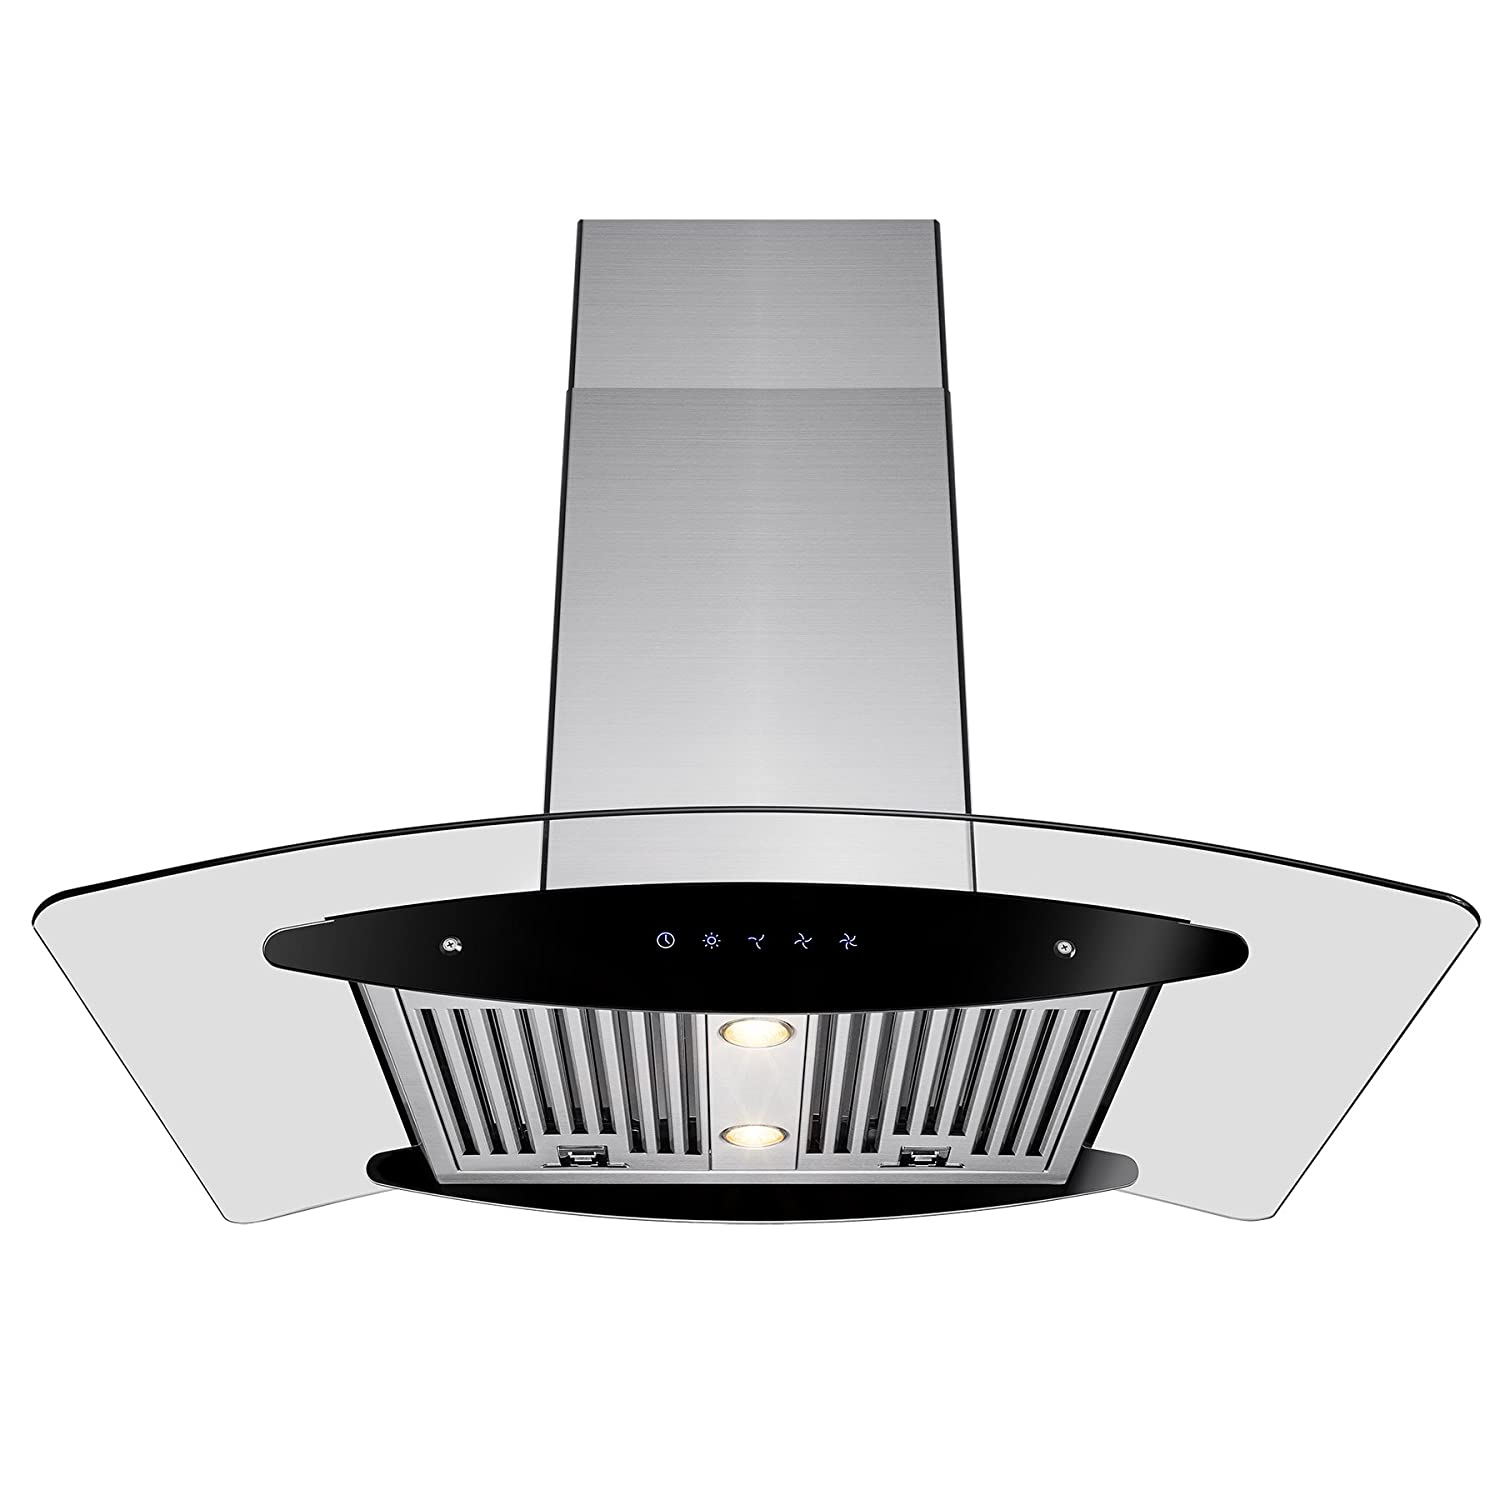 "AKDY® 36"" Stainless Steel Island Mount Dual Side LED Touch Screen Display Range Hood Kitchen Cooking Vent w/ Baffle Filters"